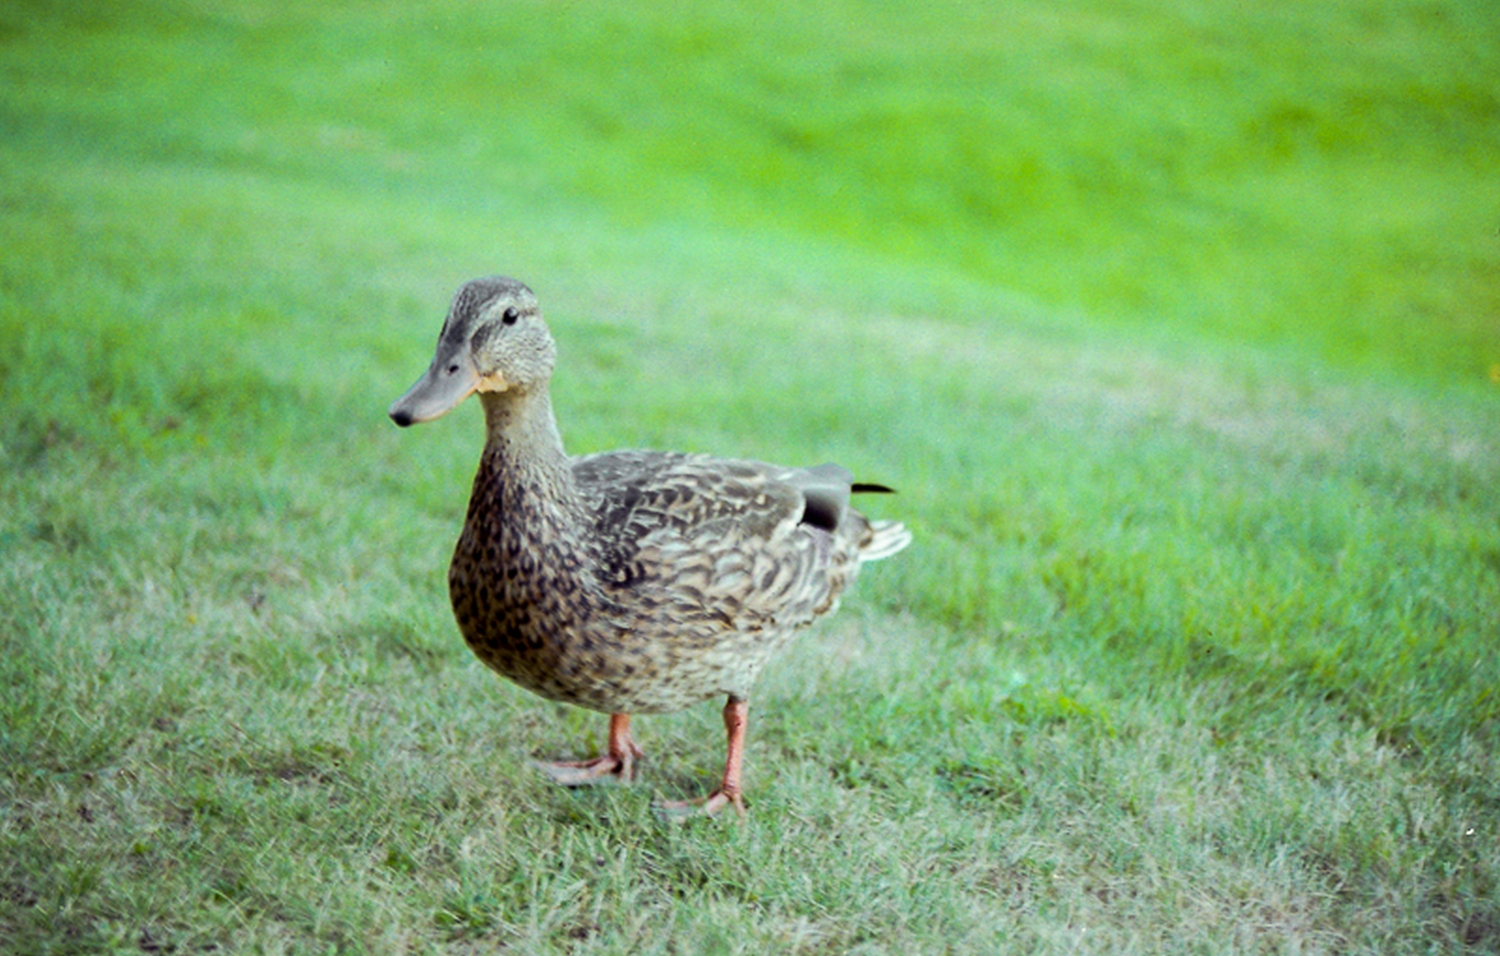 Our duck friend in Rangley, Maine.